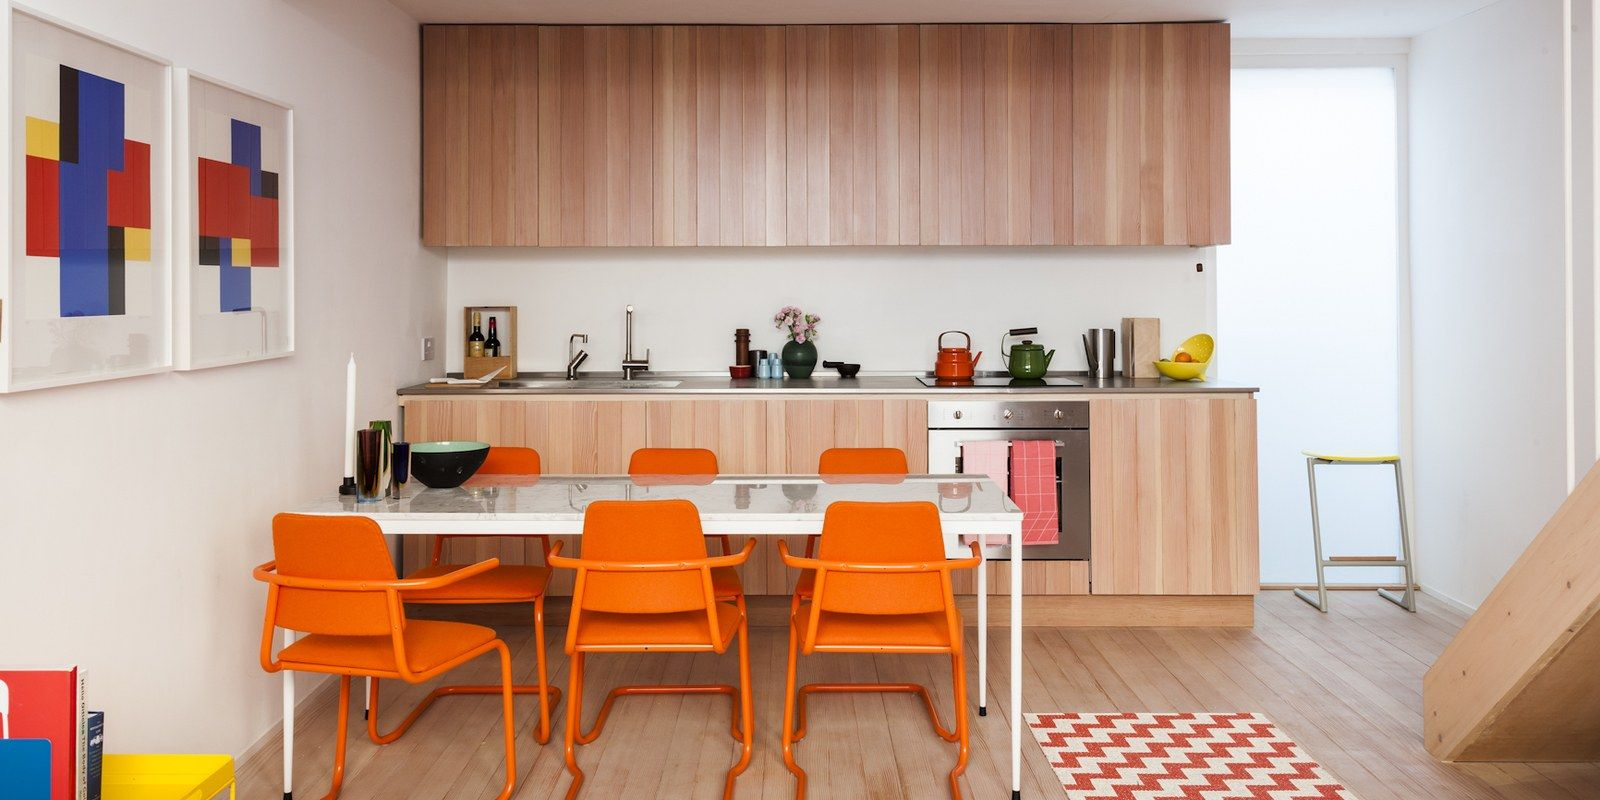 Eat in kitchen with wood paneled cabinets and orange dining chairs